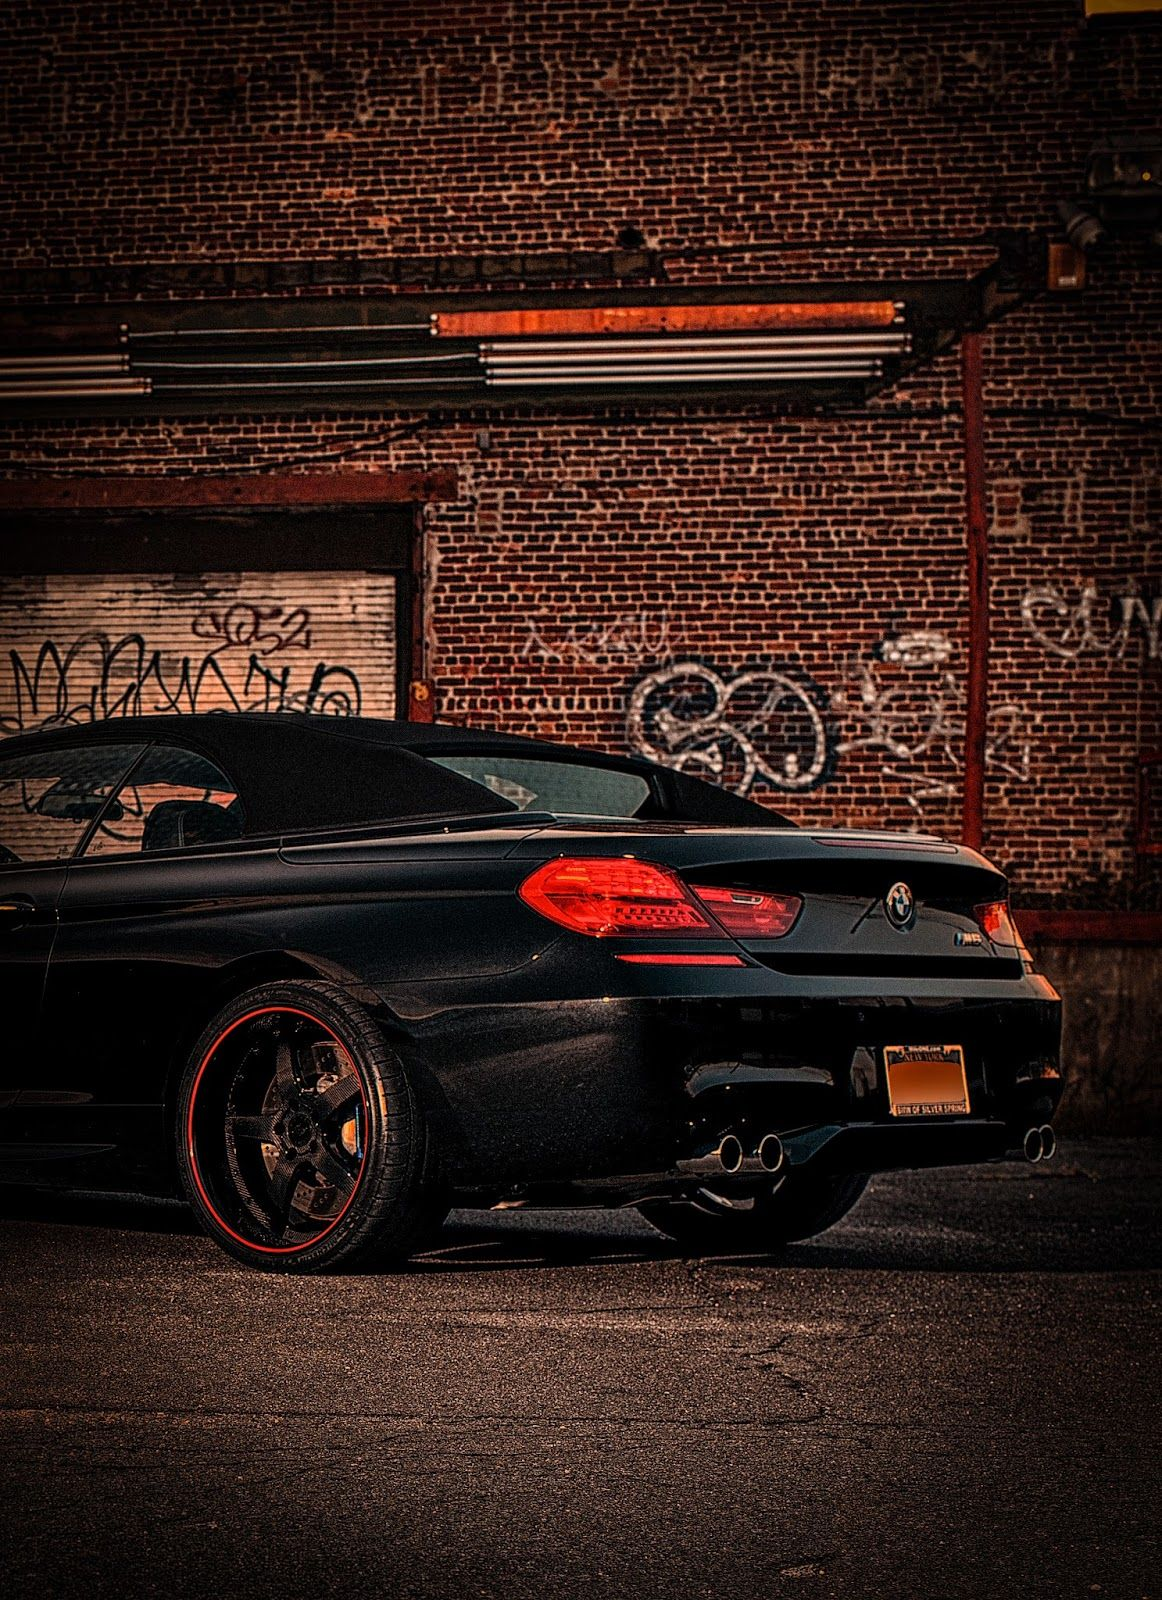 Cb Background Car Full Hd New Cb Background Picsart Free Picsart Png Iphone Background Images Dslr Background Images Best Background Images